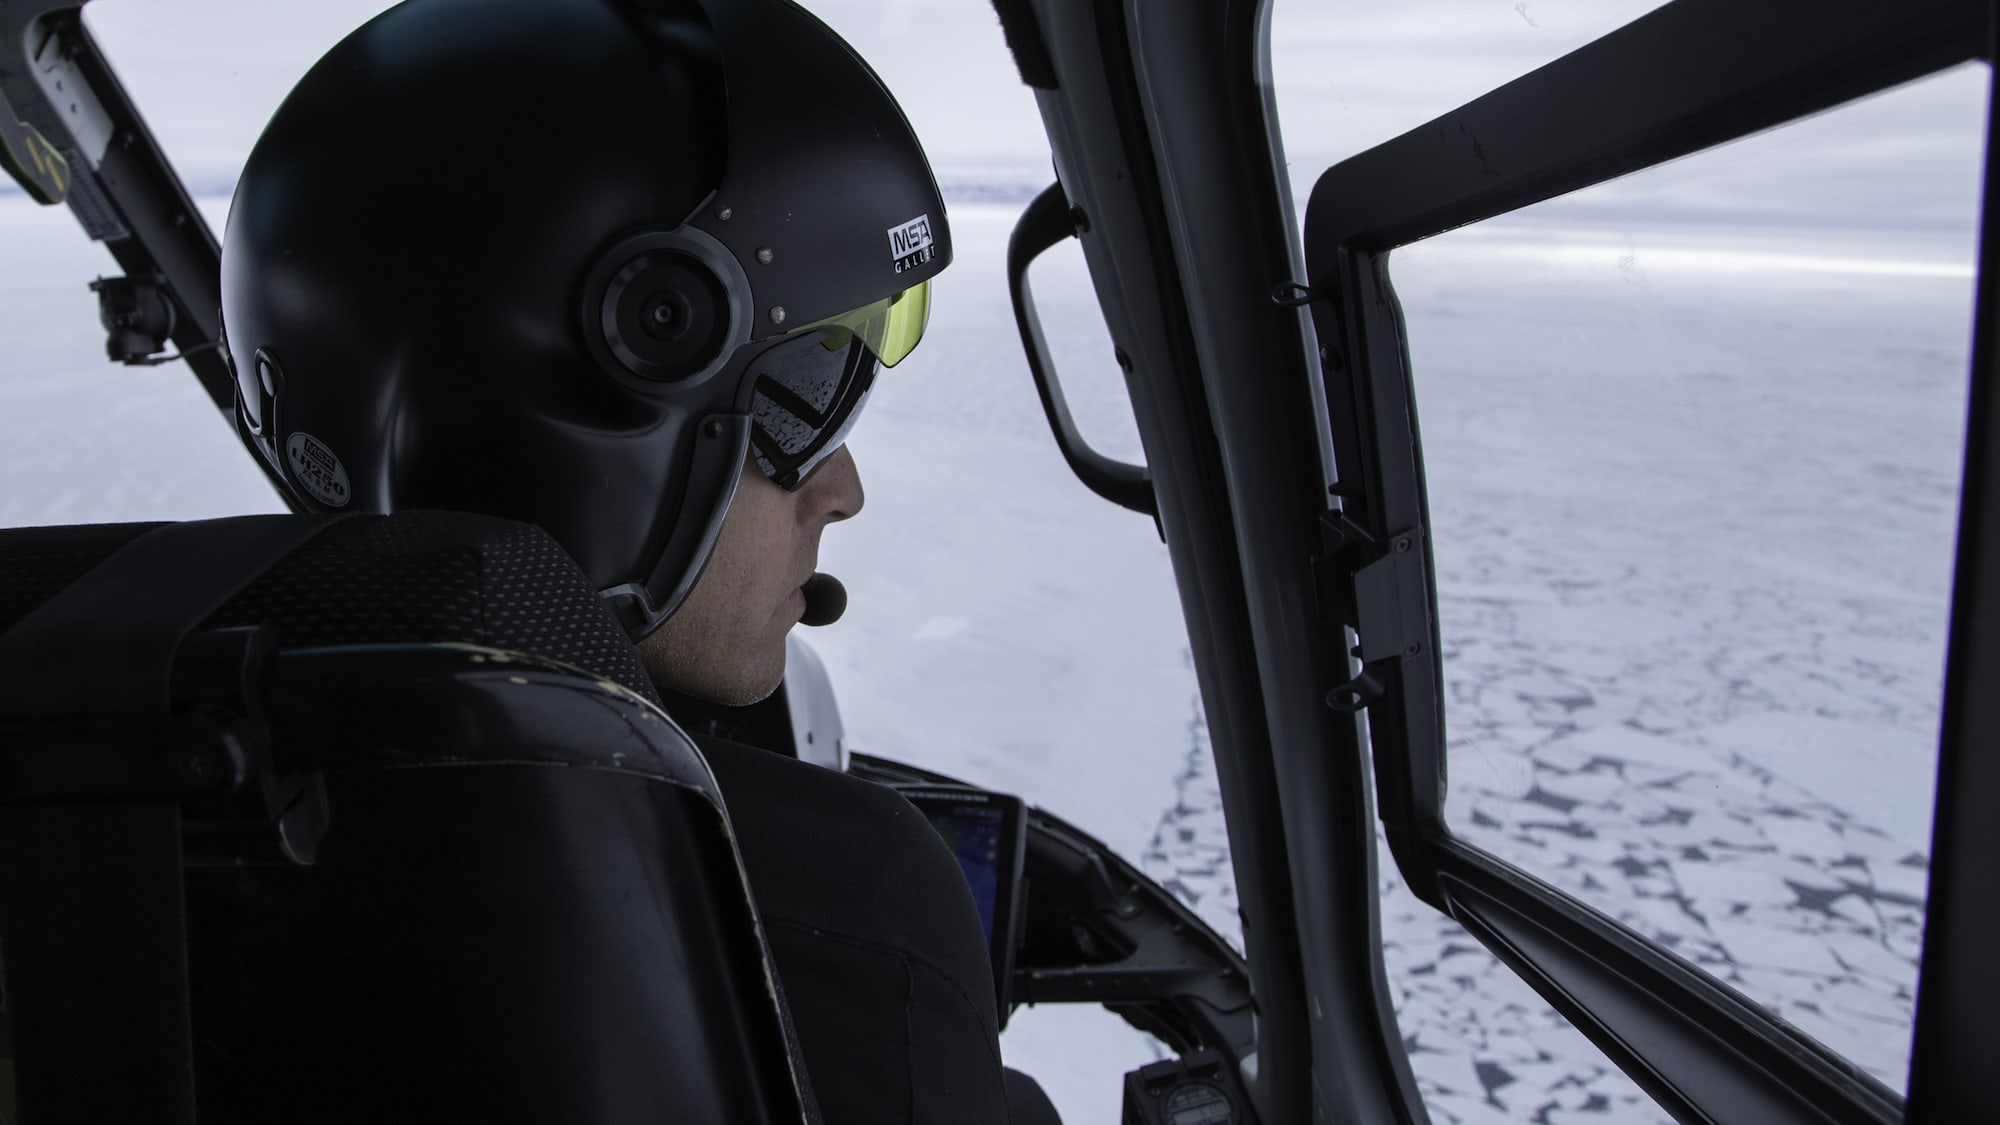 Pilot Paul Guarducci flies over broken sea ice in the Canadian Arctic. The Planet of the Whales team used a specialty rig on a helicopter to film narwhals and belugas from a distance - essential for capturing natural behavior. (National Geographic for Disney+/Sam LeGrys)